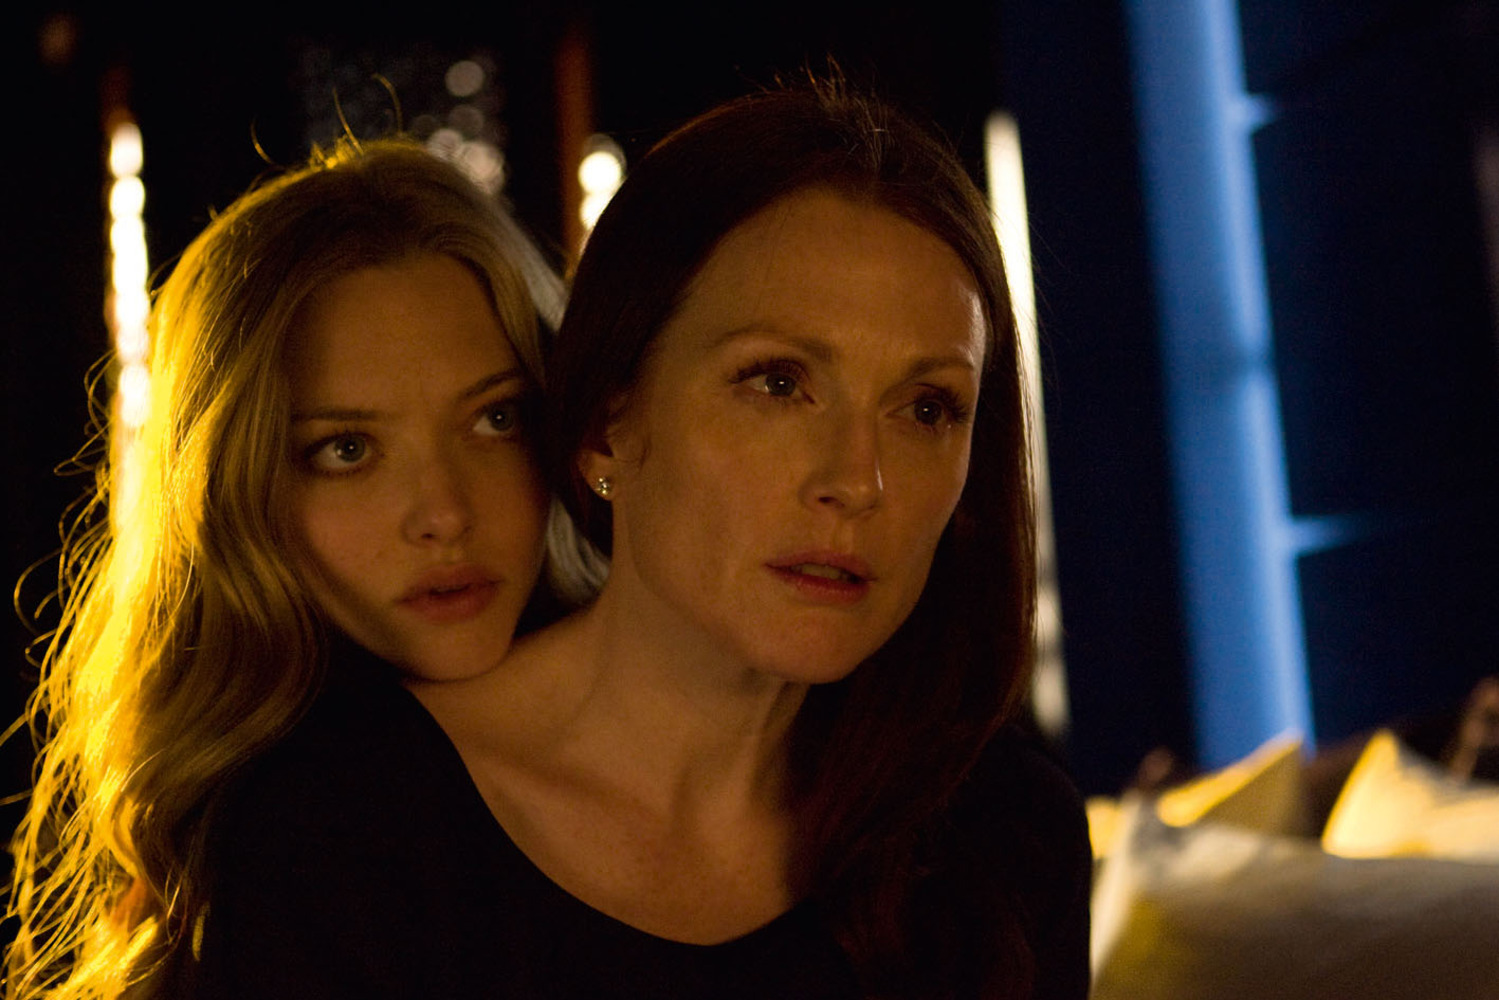 Ellen Page and Julianne Moore Play Lesbian Lovers in Freehold'